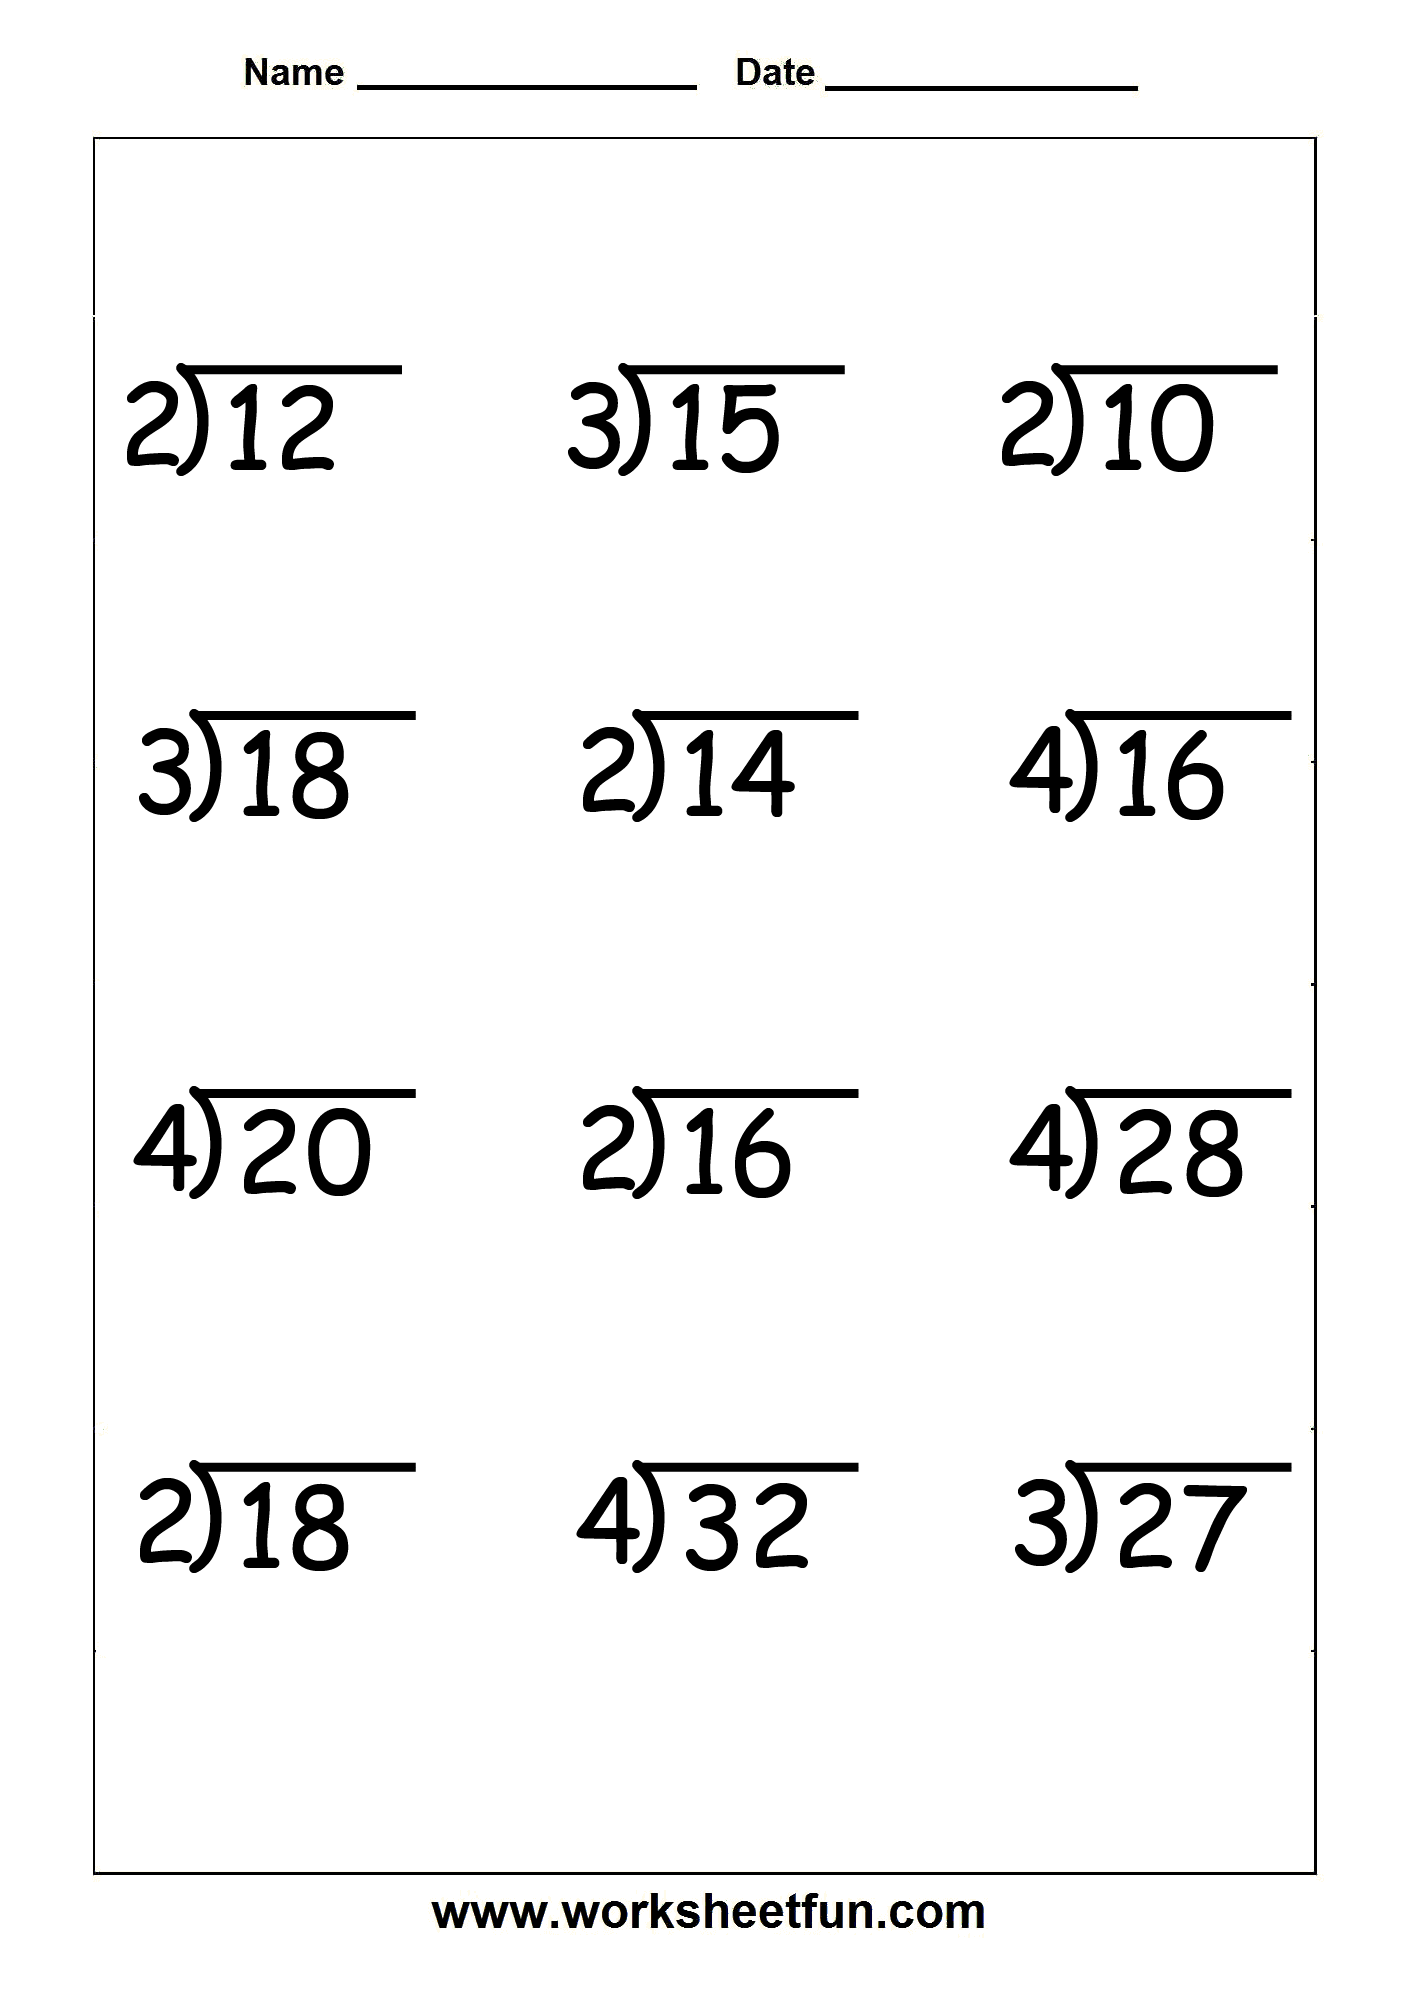 hight resolution of Long Division Practice Worksheets 4th Grade   Printable Worksheets and  Activities for Teachers